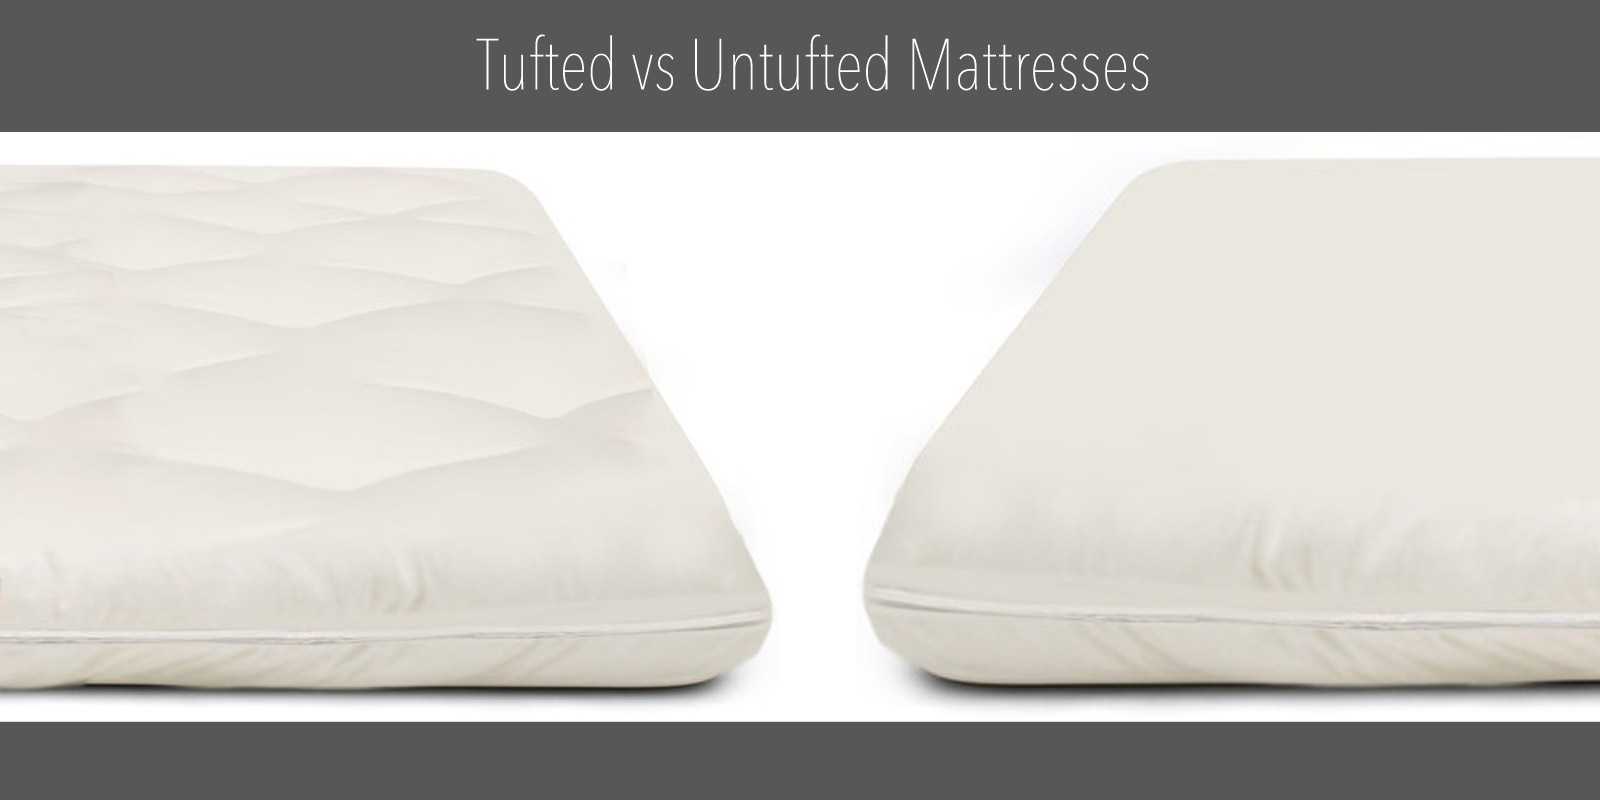 Tufted vs Untufted Mattresses